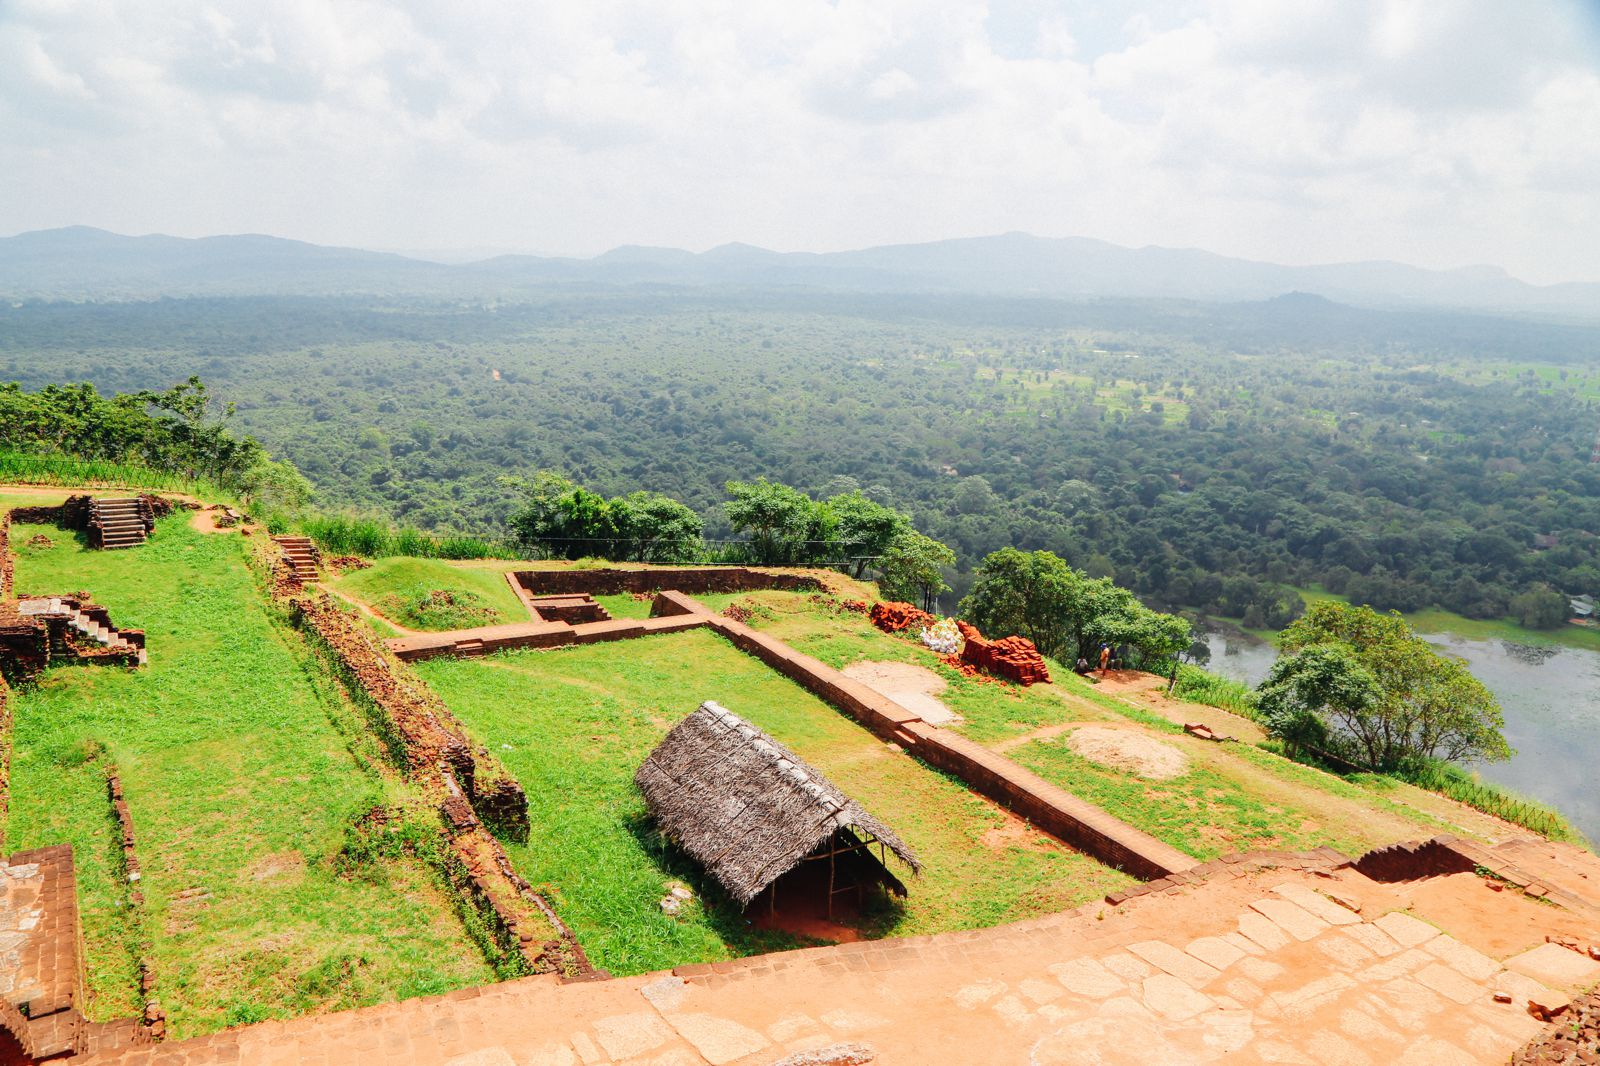 The Complete Guide To Climbing Sri Lanka's UNESCO World Heritage Site Of Sigiriya - Lion Rock (51)